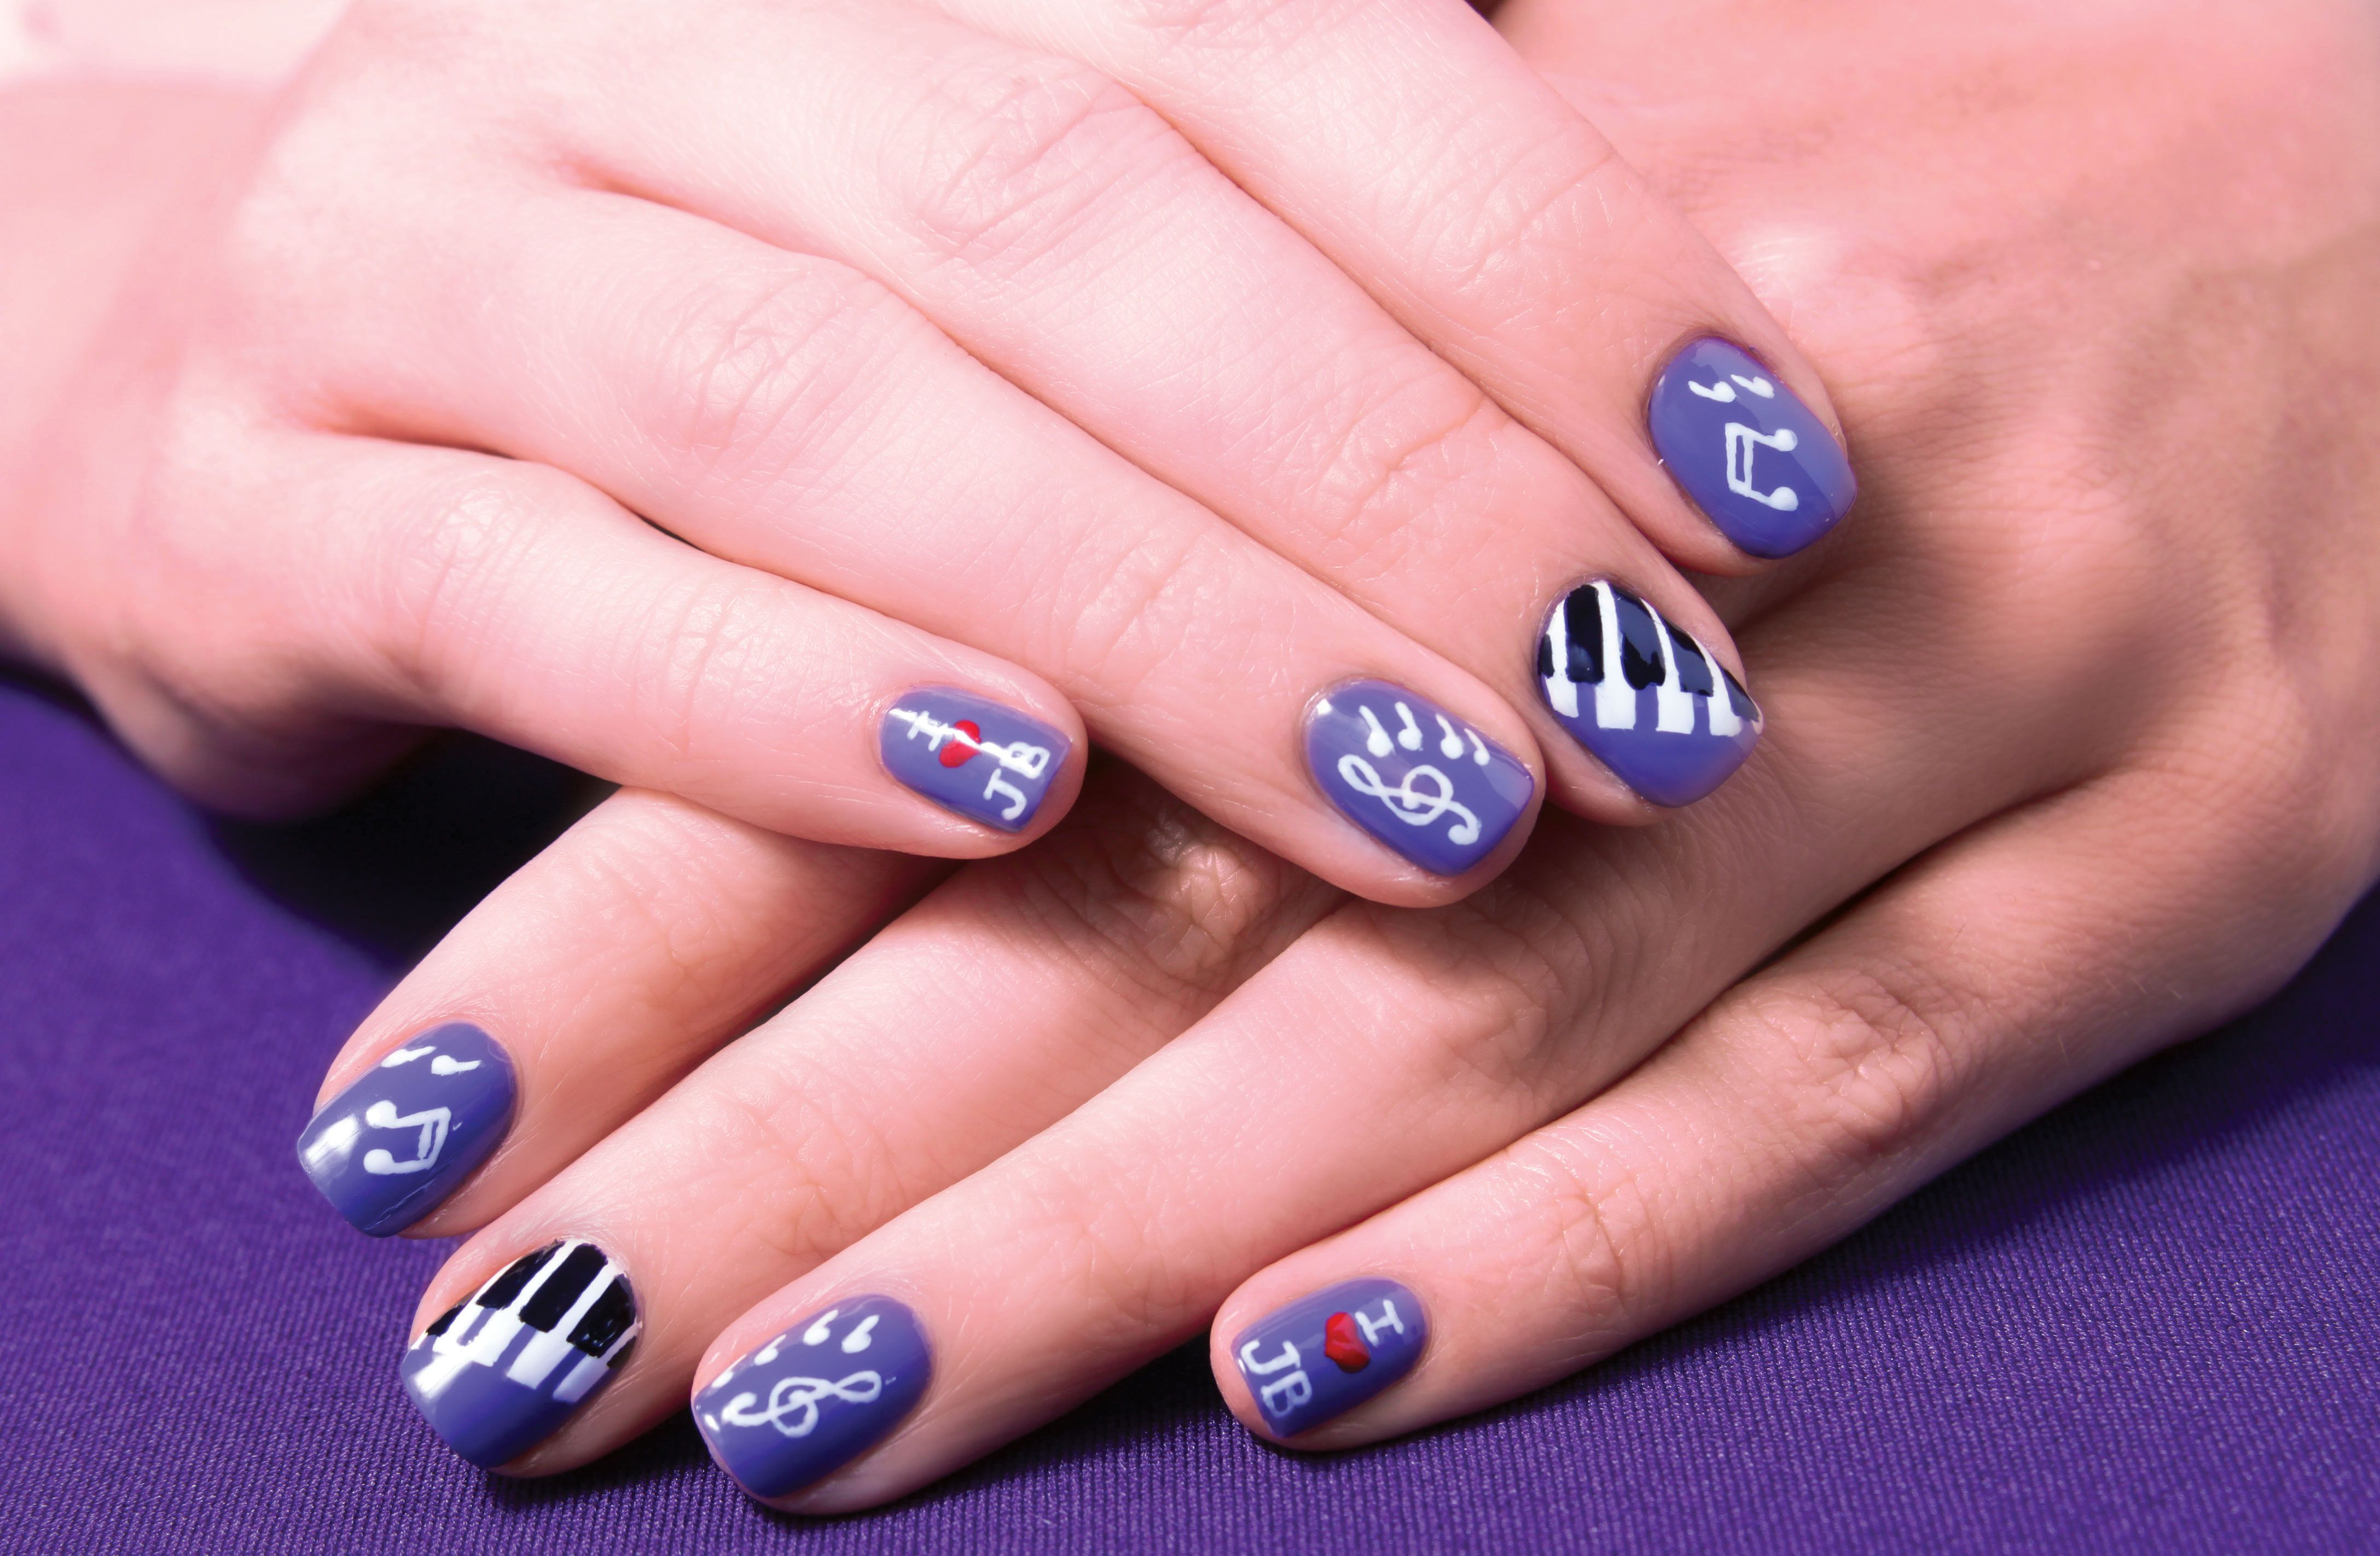 Justin Bieber inspired nail art from The Nail spa www.thenailspa.com ...